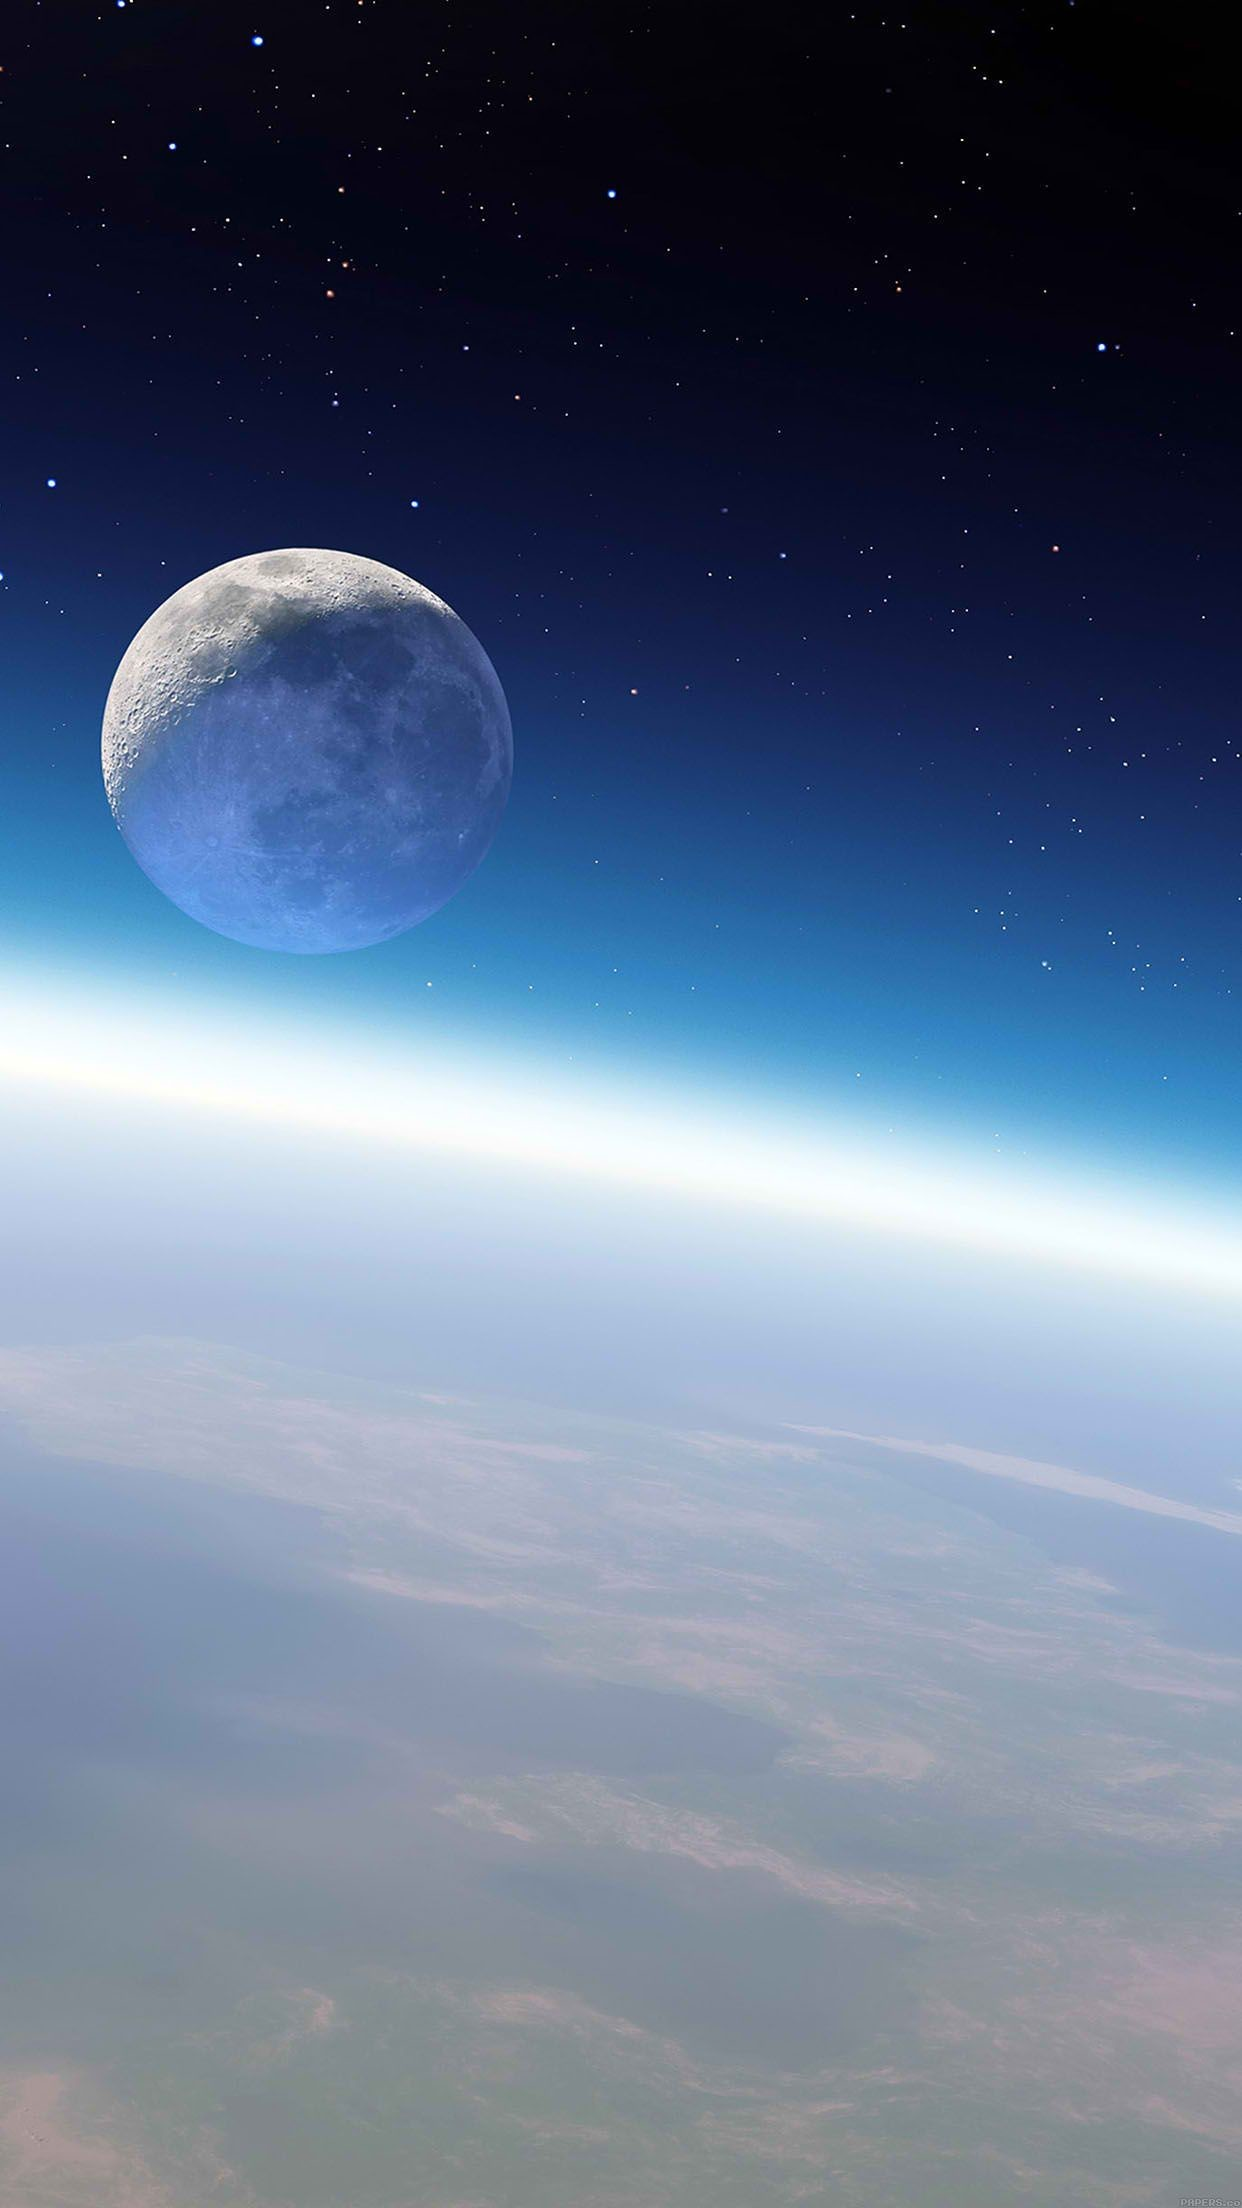 wallpaper-earth-and-moon-space-34-iphone6-plus-